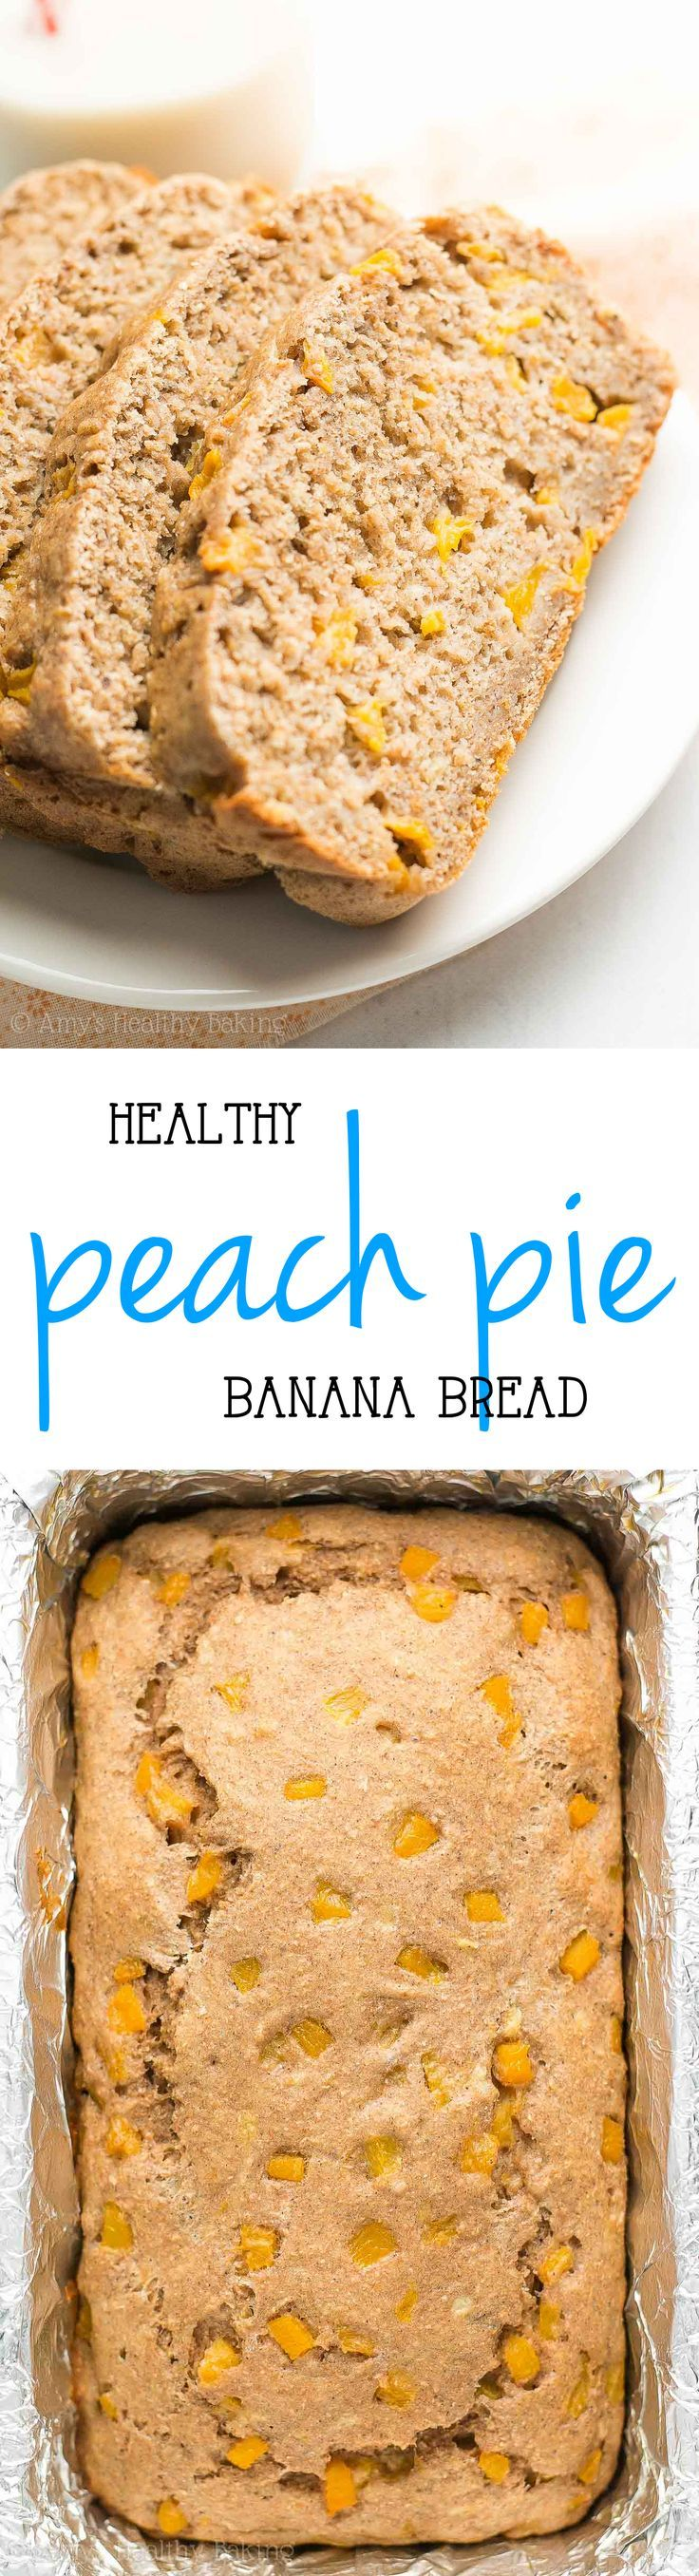 This easy & {HEALTHY!} Peach Pie Banana Bread recipe is amazing! Only 106 calories! Great for quick breakfasts & snacks!